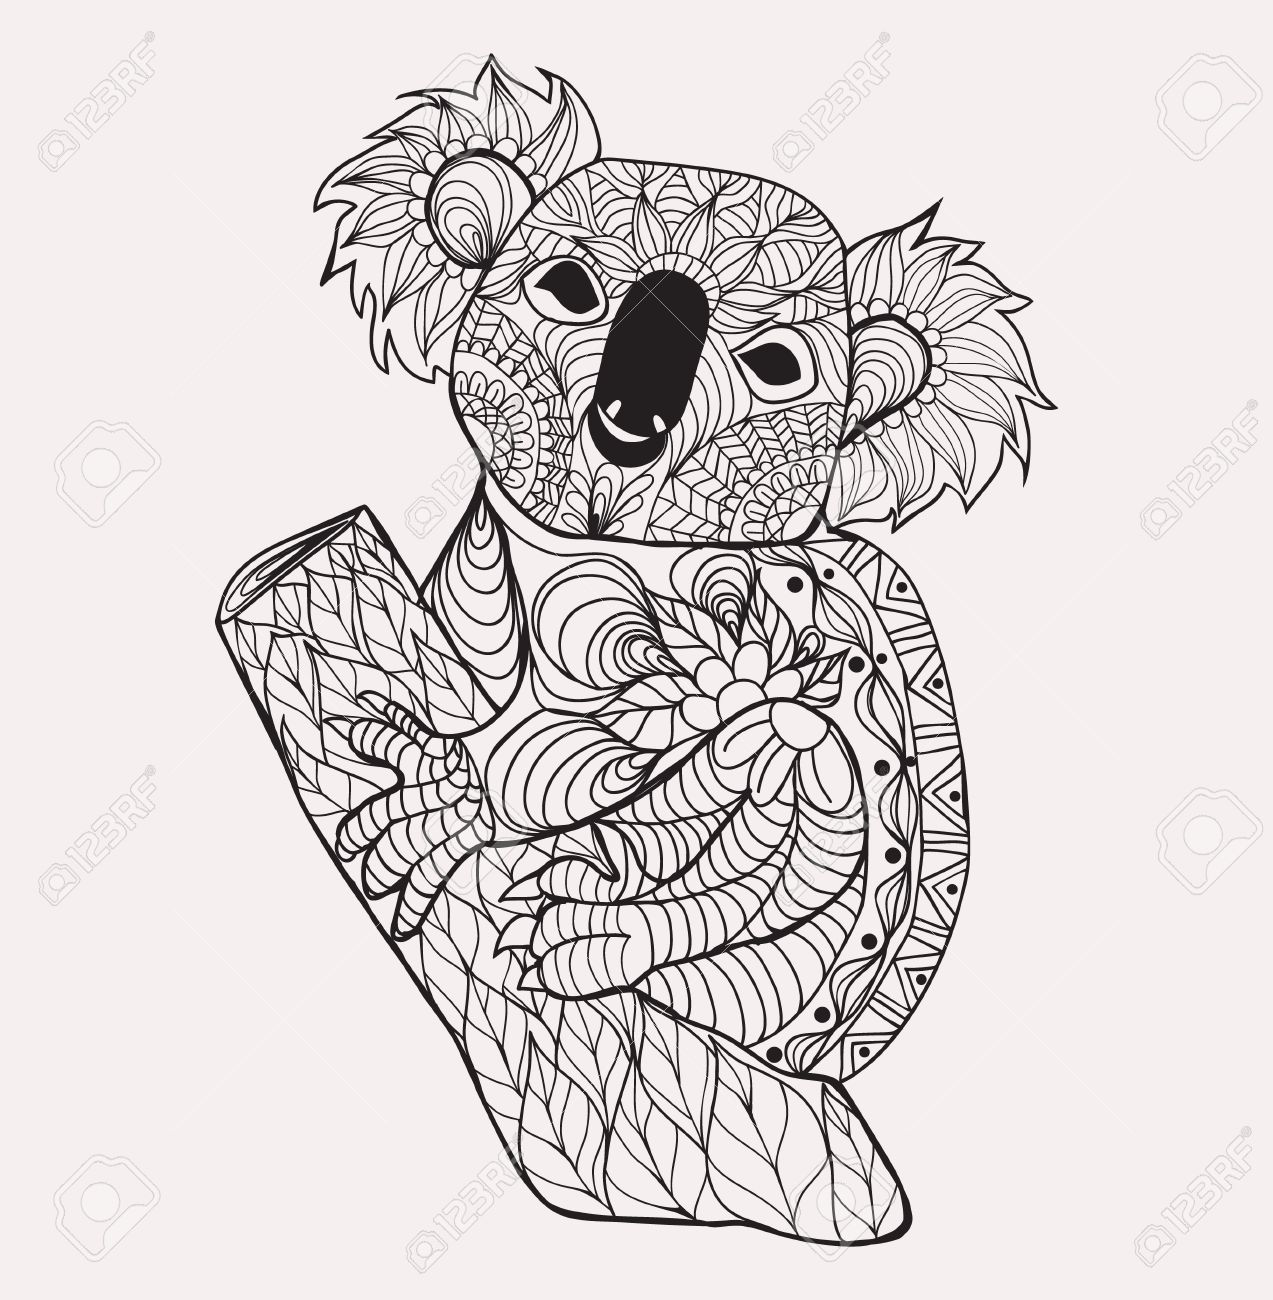 Printable Coloring Pages Koala Bear Page Black White Hand Drawn Doodle Animal